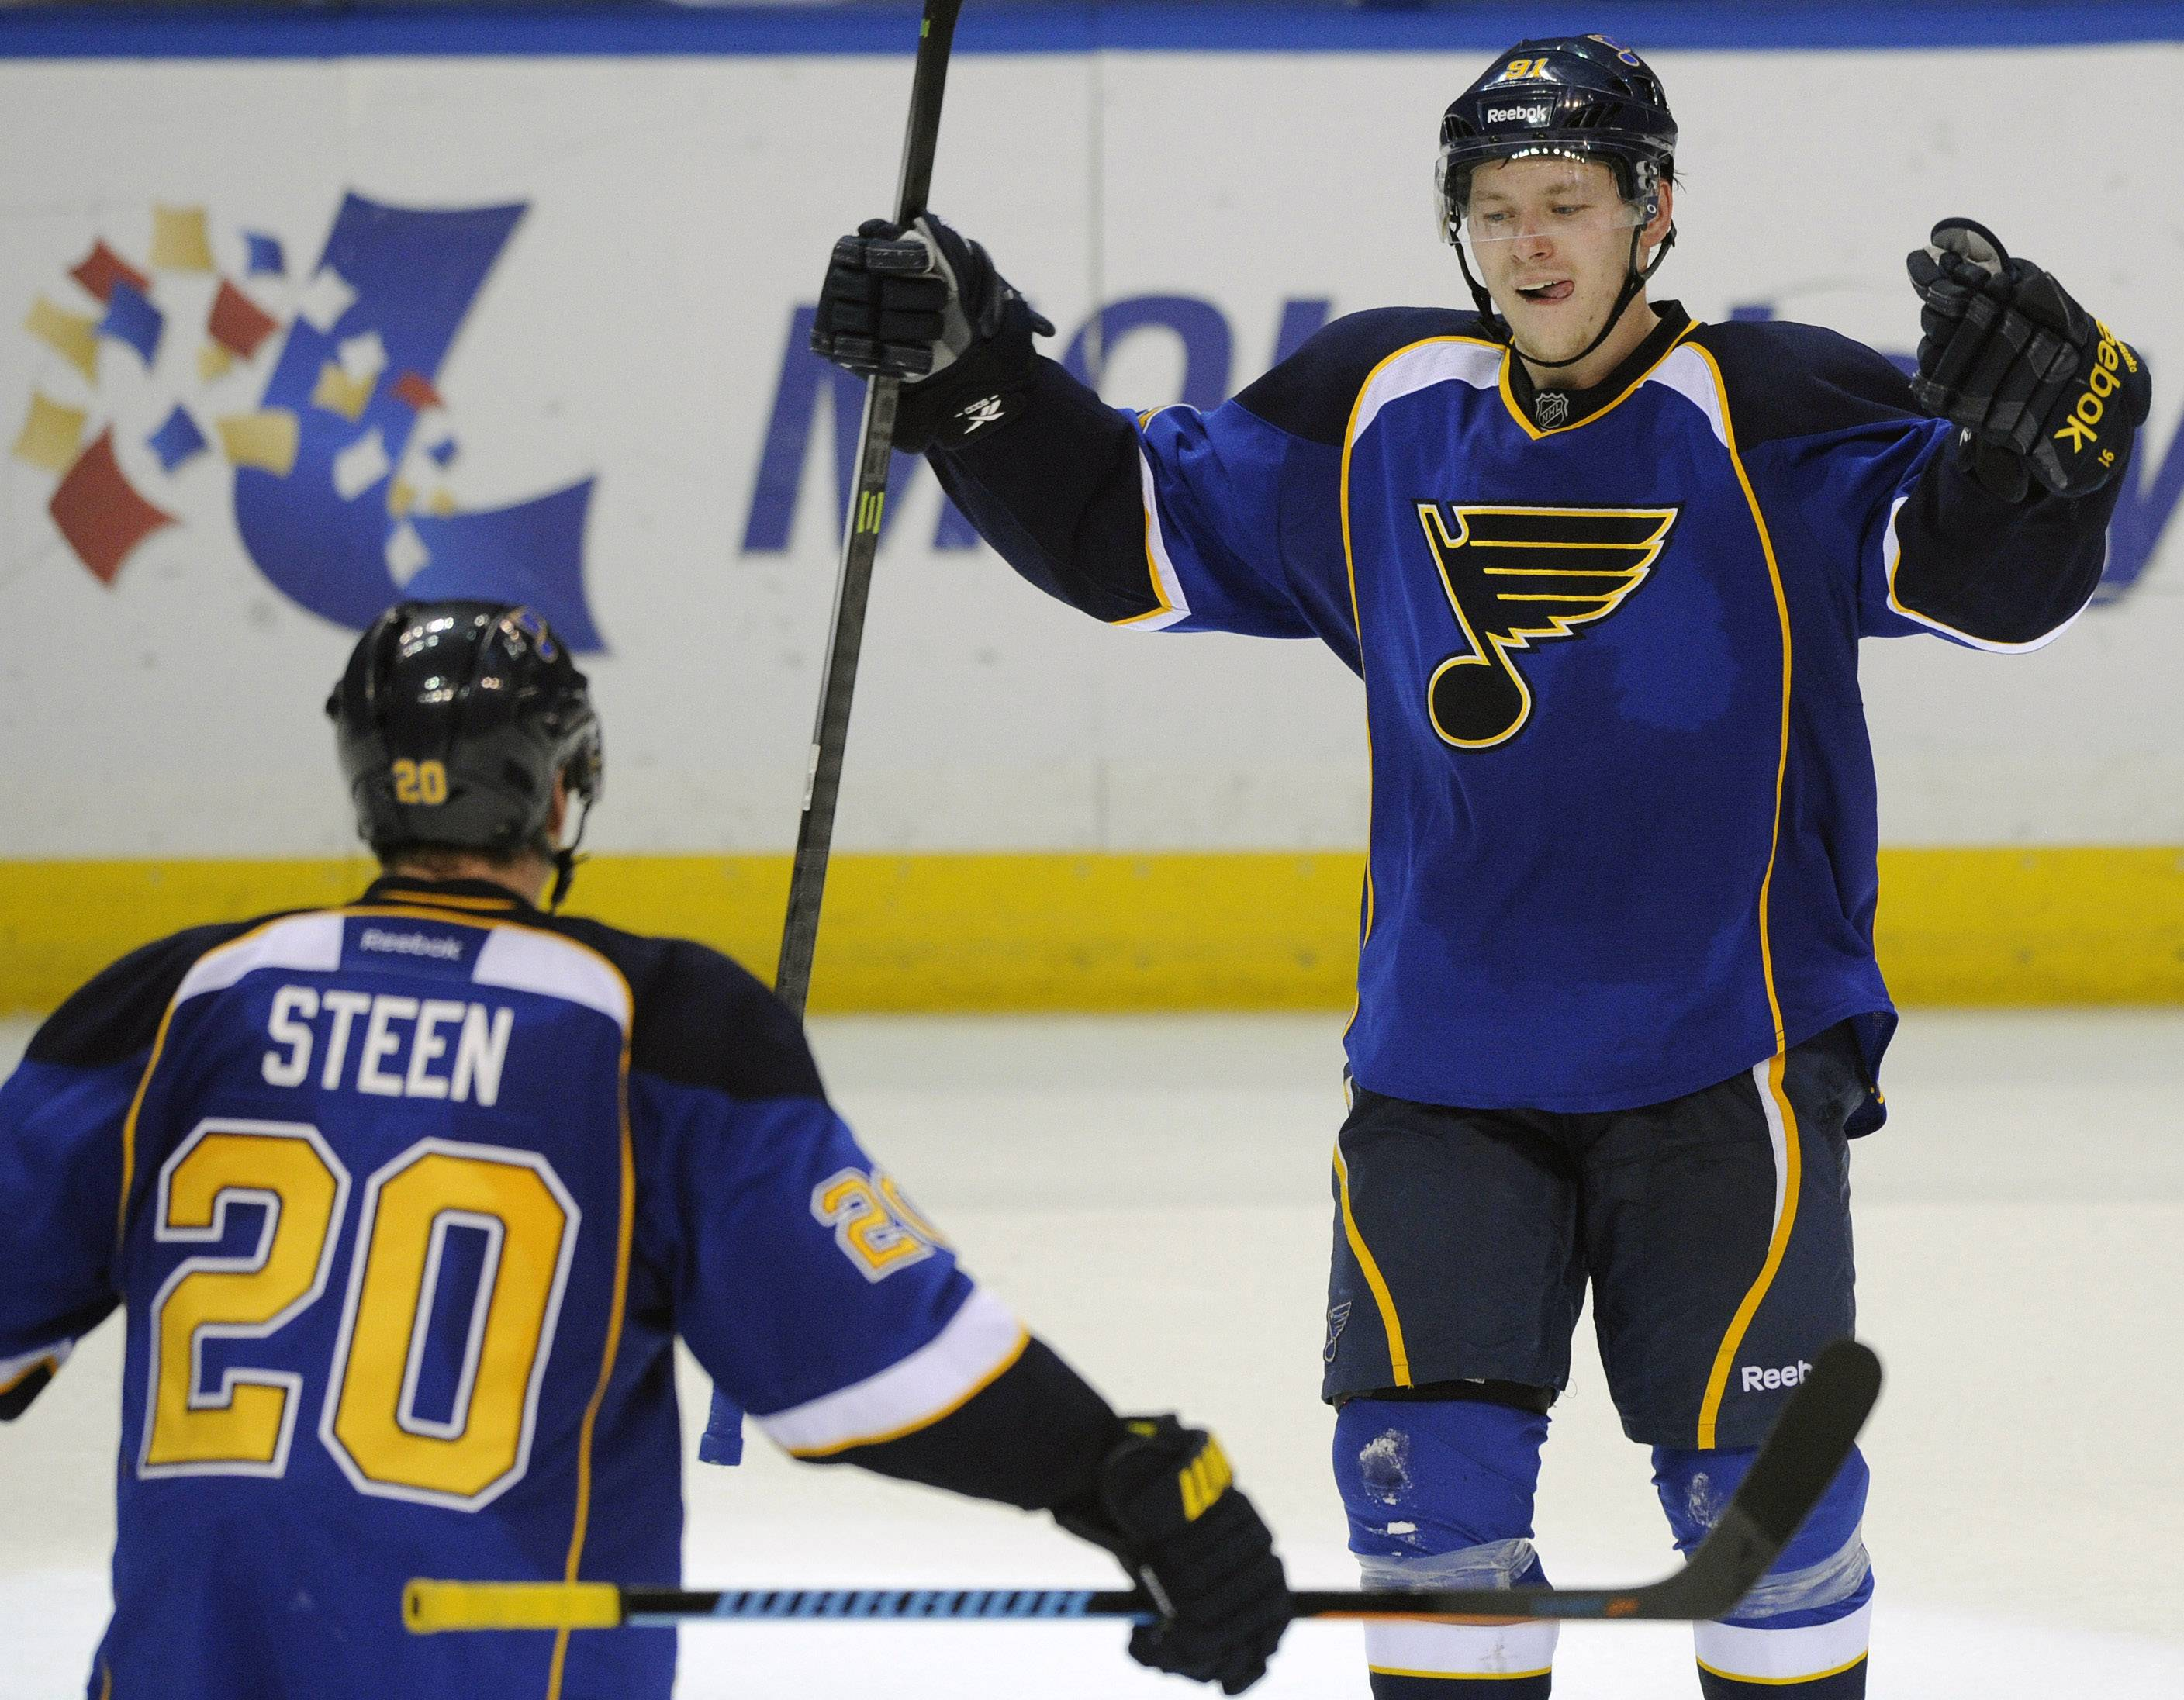 St. Louis Blues' Vladimir Tarasenko (91), of Russia, celebrates with teammate Alexander Steen (20) after his game-tying goal against the Chicago Blackhawks during the third period in Game 2 of a first-round NHL hockey playoff series, Saturday, April 19, 2014, in St. Louis.